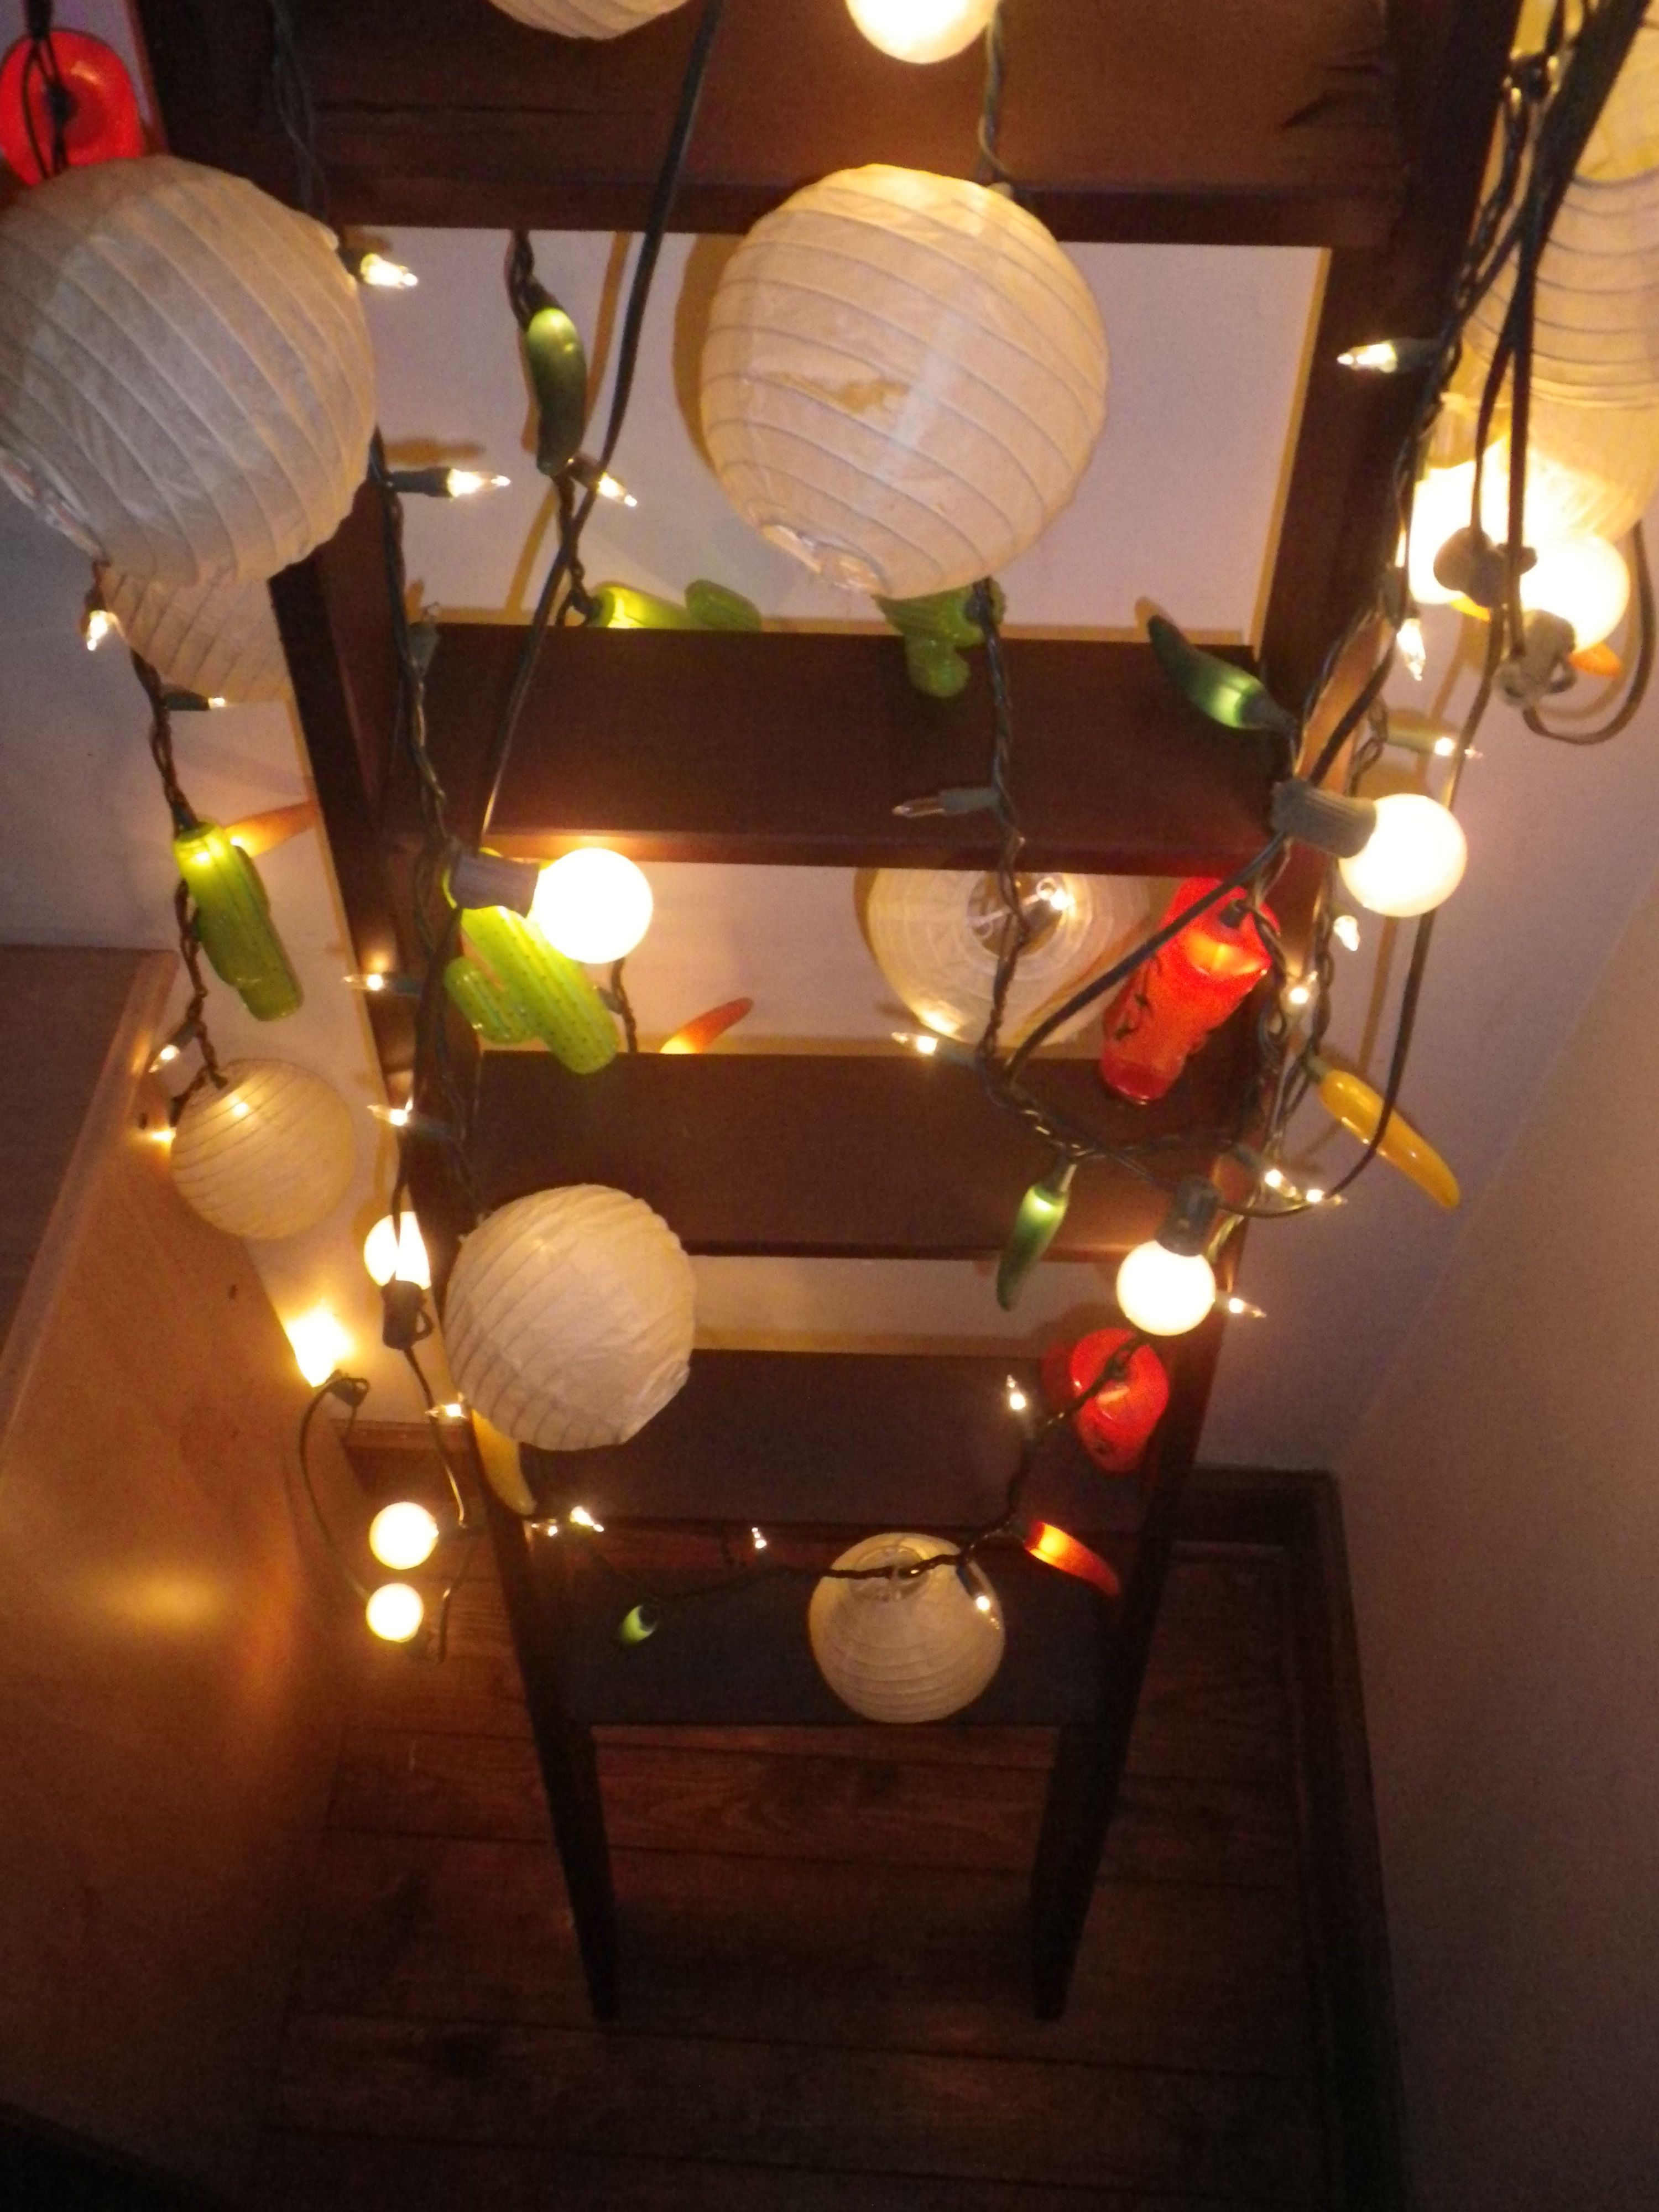 creative lighting display lighting lanterns display home decor assorted cacti cowboy boots and chili peppers on ladder